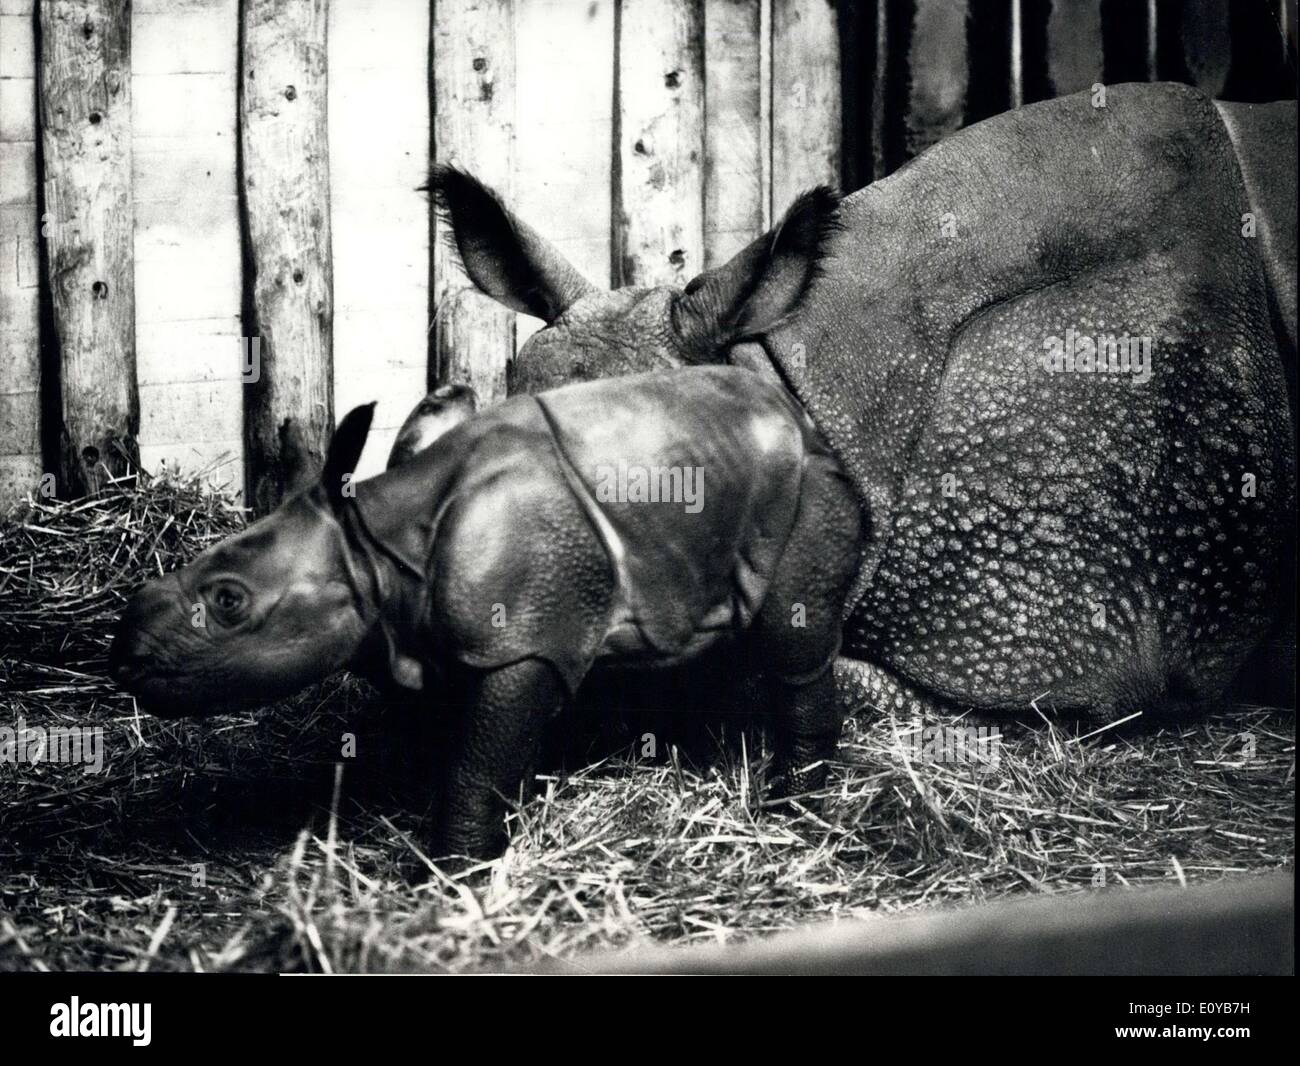 Oct. 10, 1969 - Breeding exploit in the Basic 200:An absolutely extraordinary brooding success in the zoological garden of Basle: The tenth armoured rhinocerorus is born in this swiss captivity. The mother, ''Moola'' was 1'700 kg whon she gave birth to the 76 kg baby on the 5th October.. This world famous breed gives its young rhinrus to the zoo all over the world. Photo shows Mother ''Moola'' with the only a few hours old female baby. - Stock Image